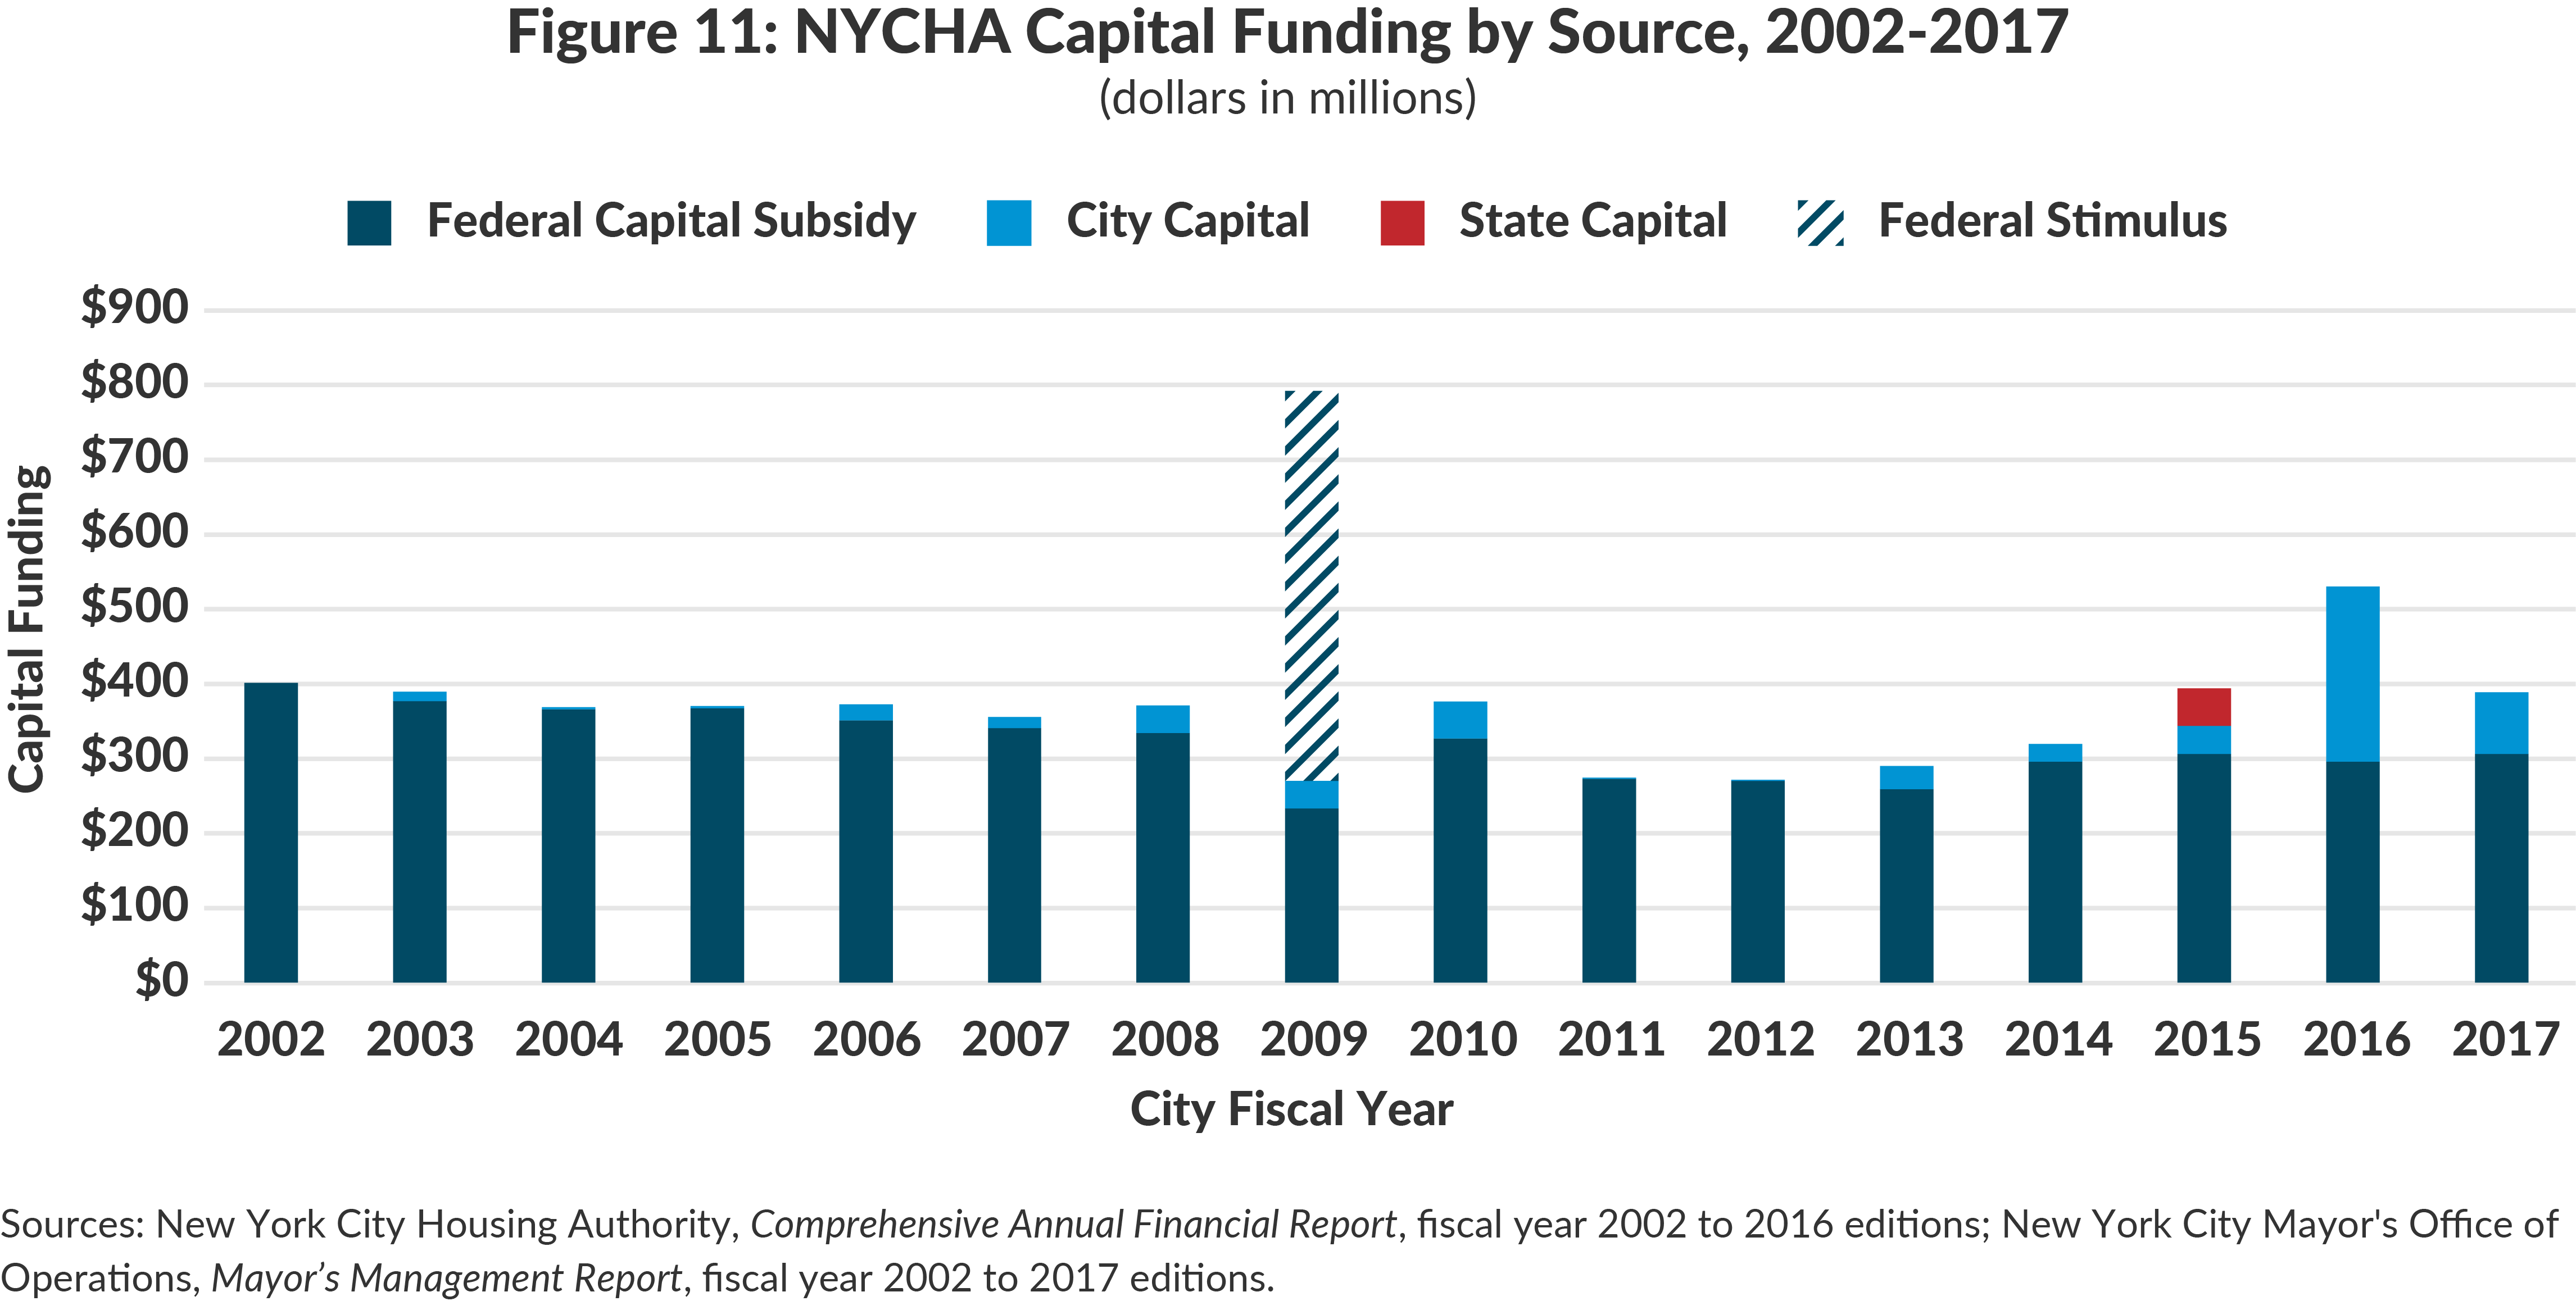 Figure 11: NYCHA Capital Funding by Source, 2002-2017